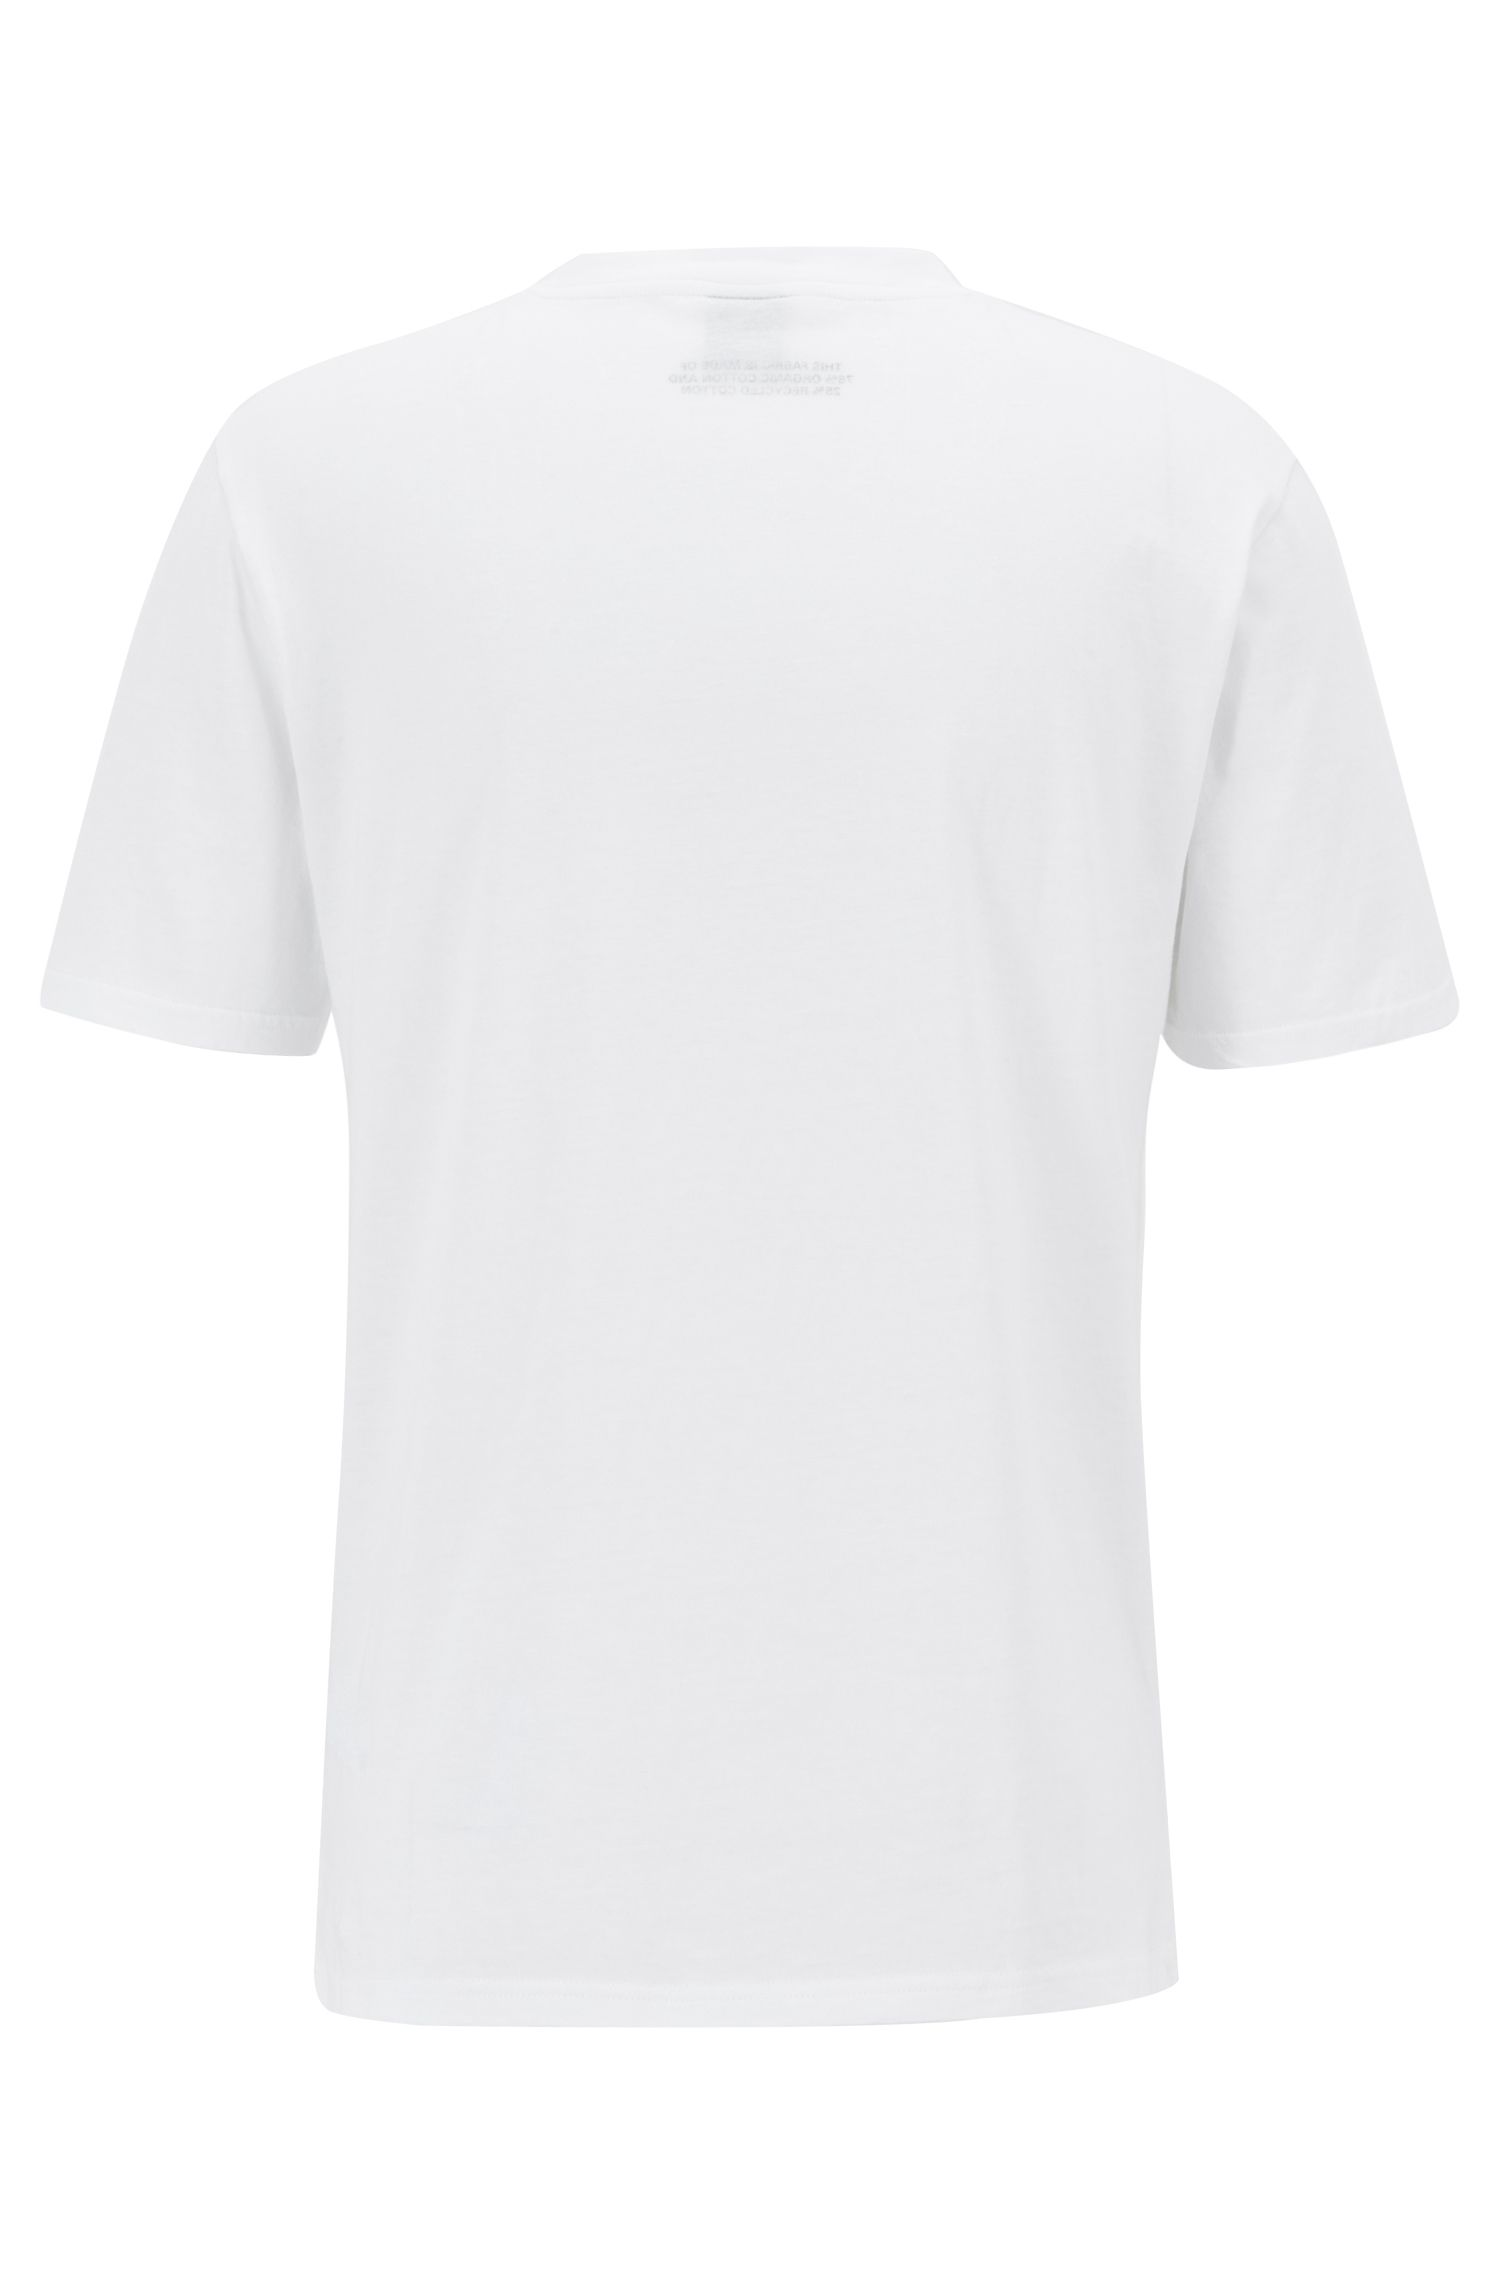 Relaxed-fit T-shirt in eco-friendly recot²® cotton, White